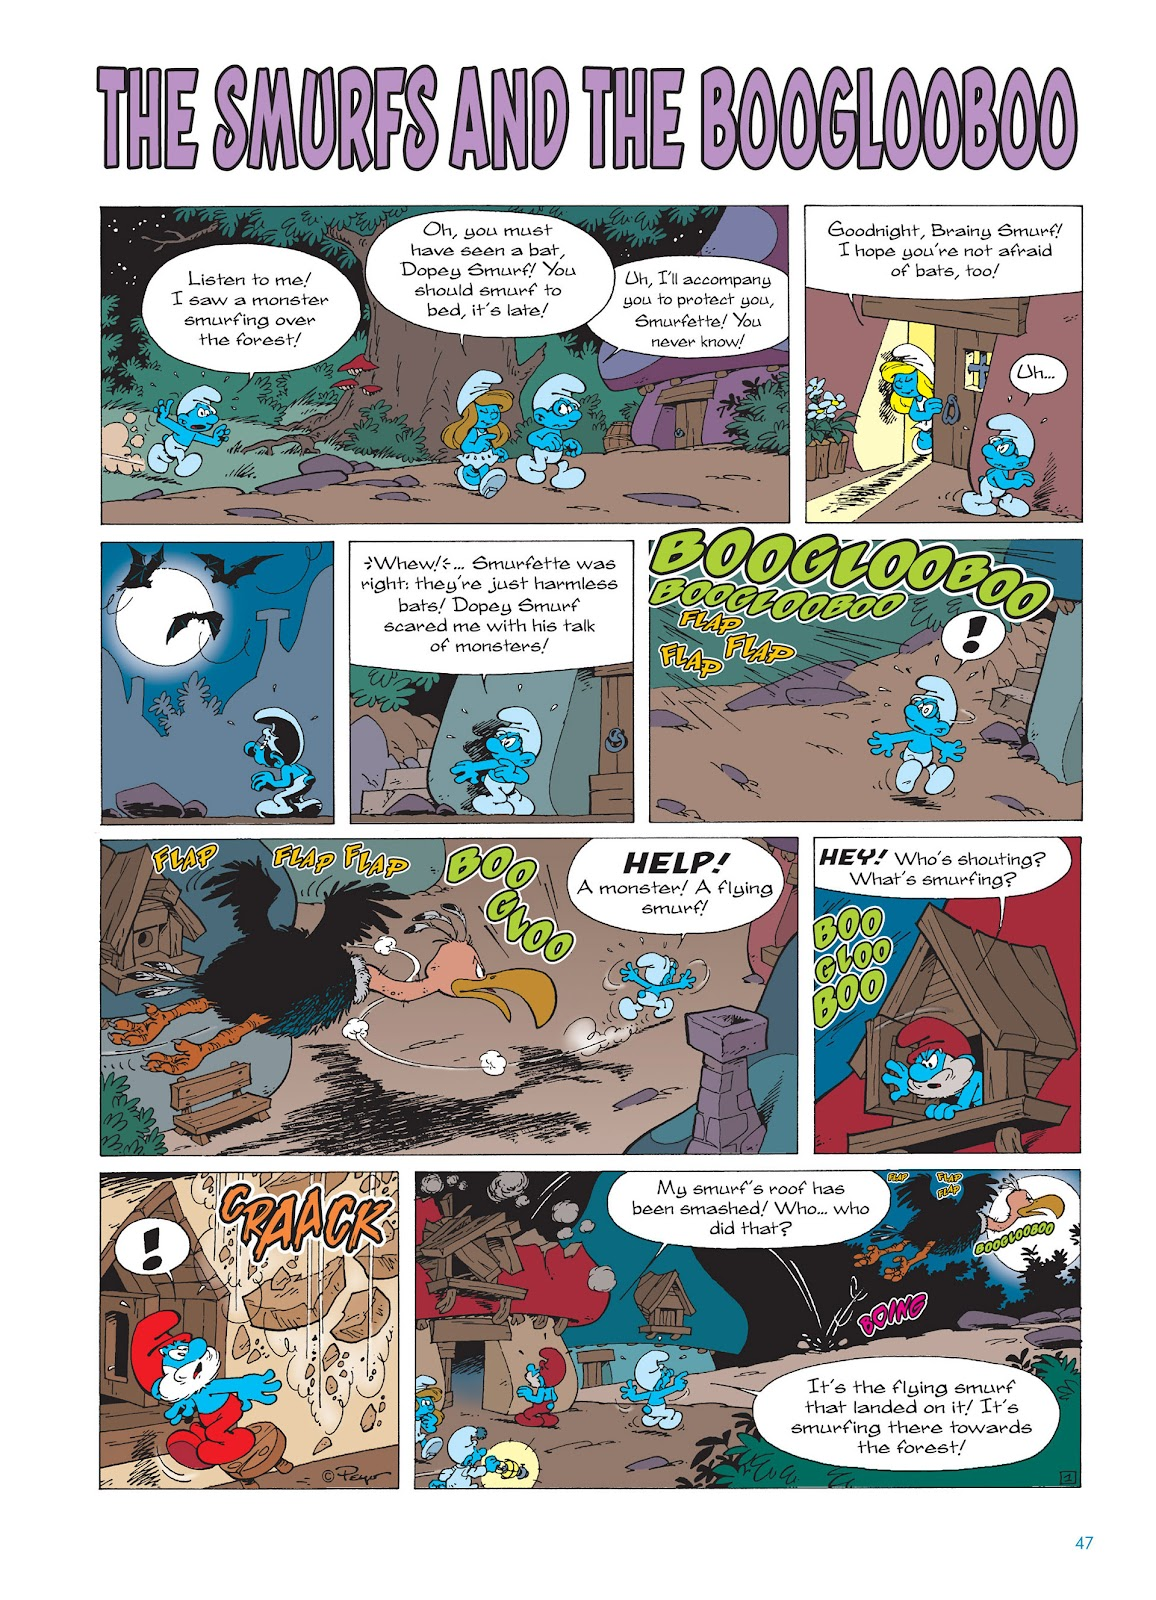 Read online The Smurfs comic -  Issue #15 - 48